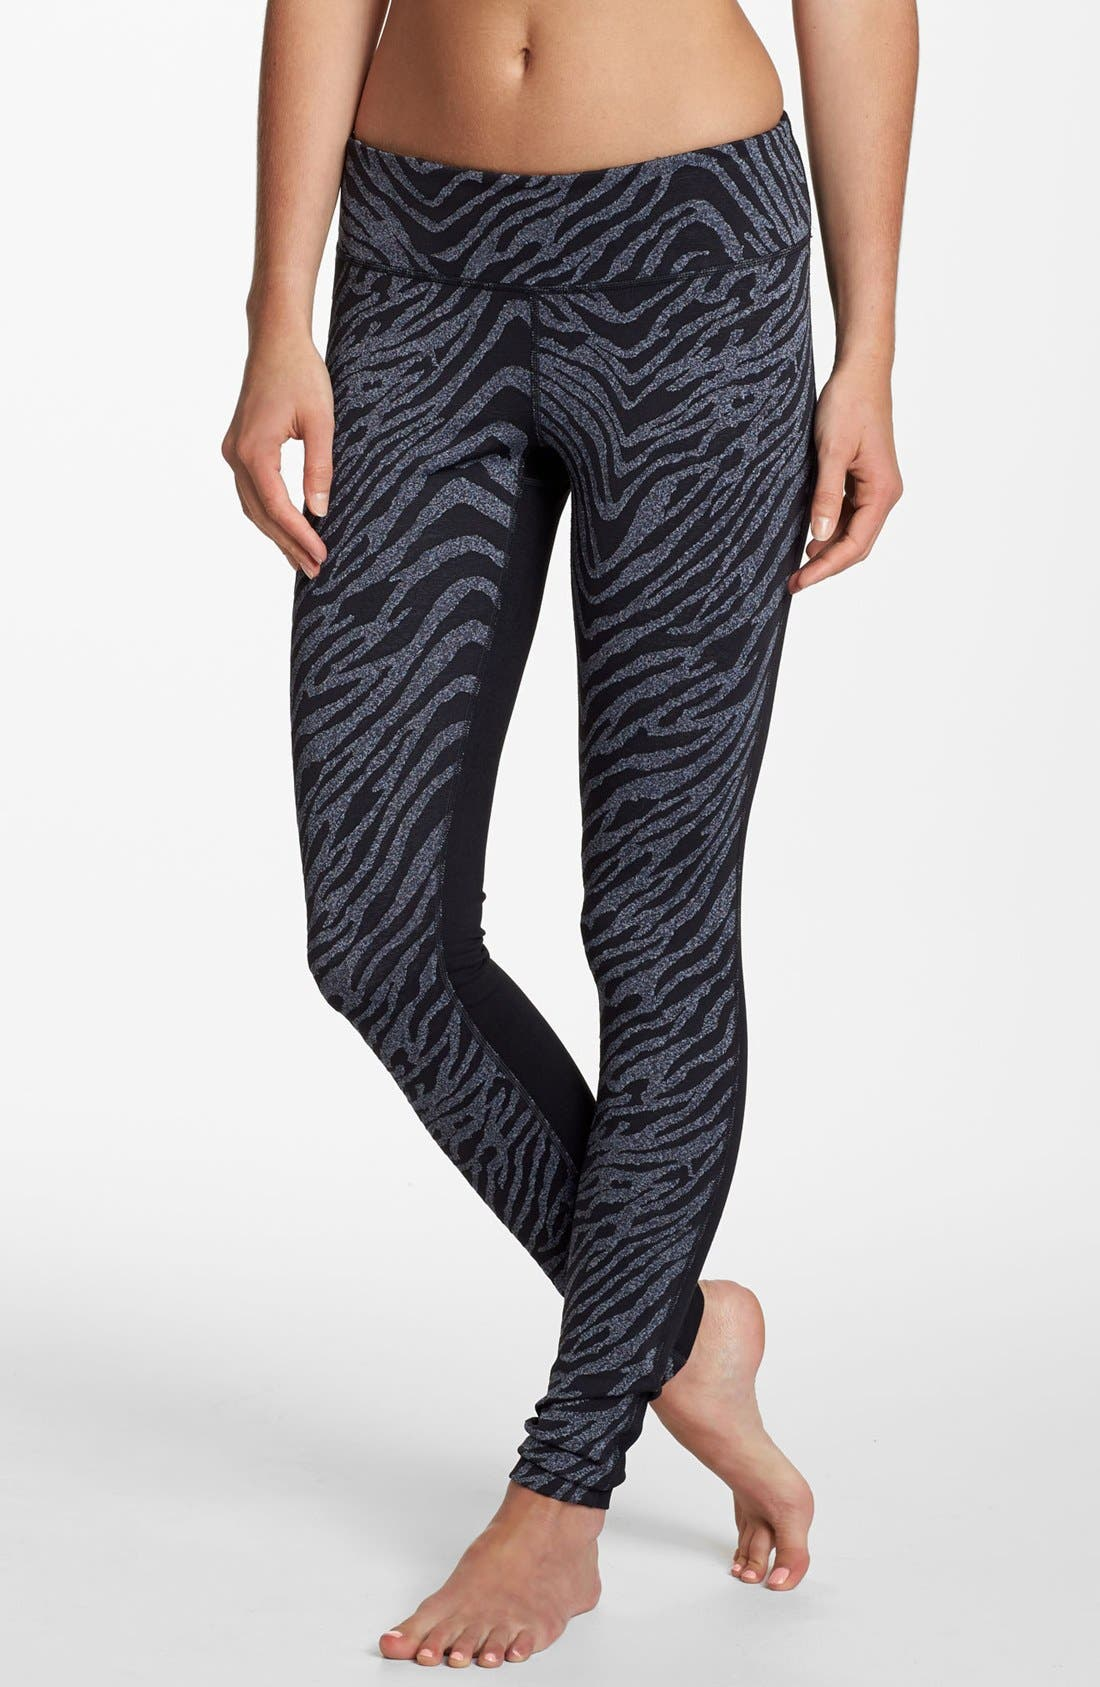 Main Image - Zella 'Live In' Zebra Print Leggings